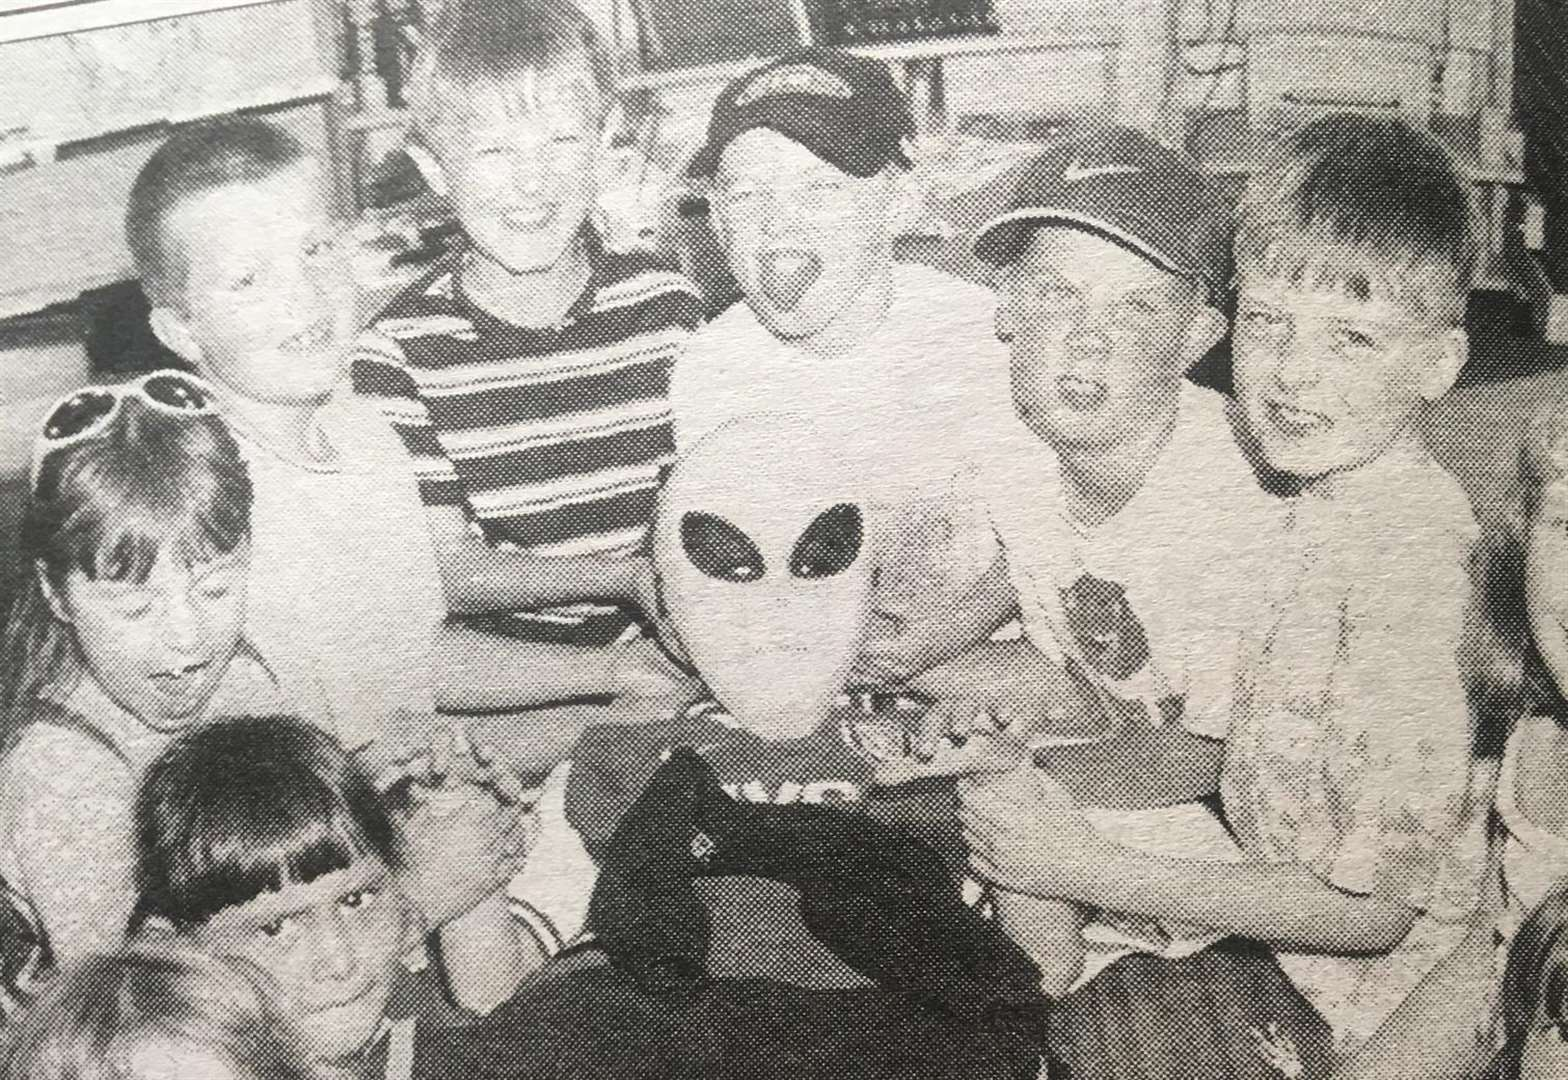 NOSTALGIA: Aliens land in Crowland in 1999